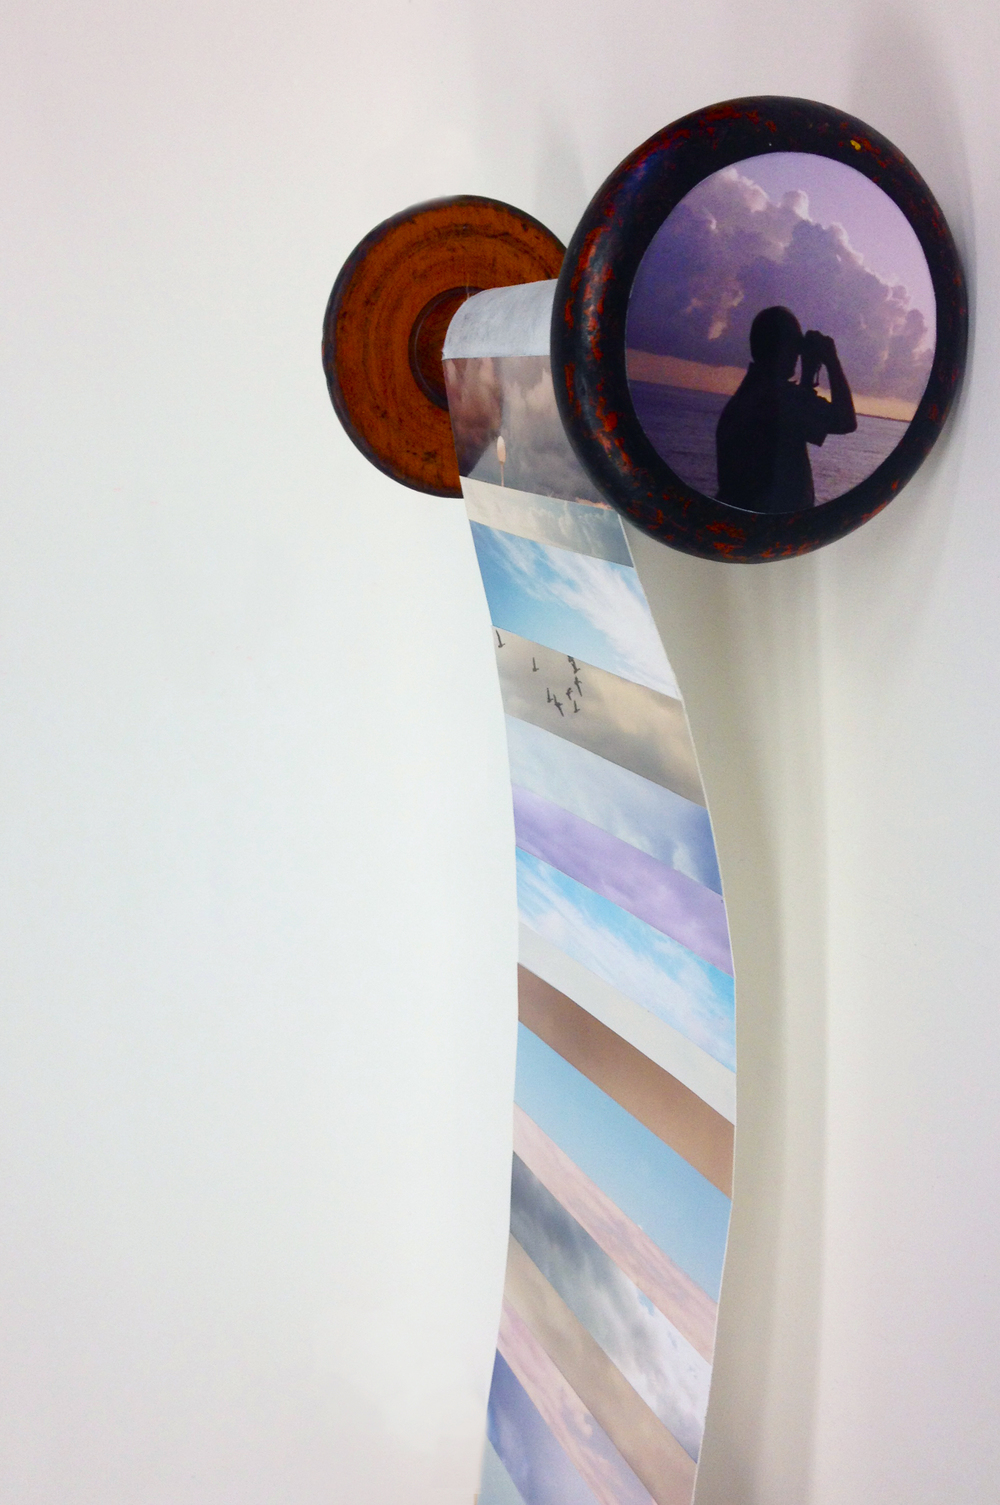 Sky Scroll, from the series Larry's Life, 2013, Re-purposed photographic prints and vintage spool. 10-inches X 4-feet.